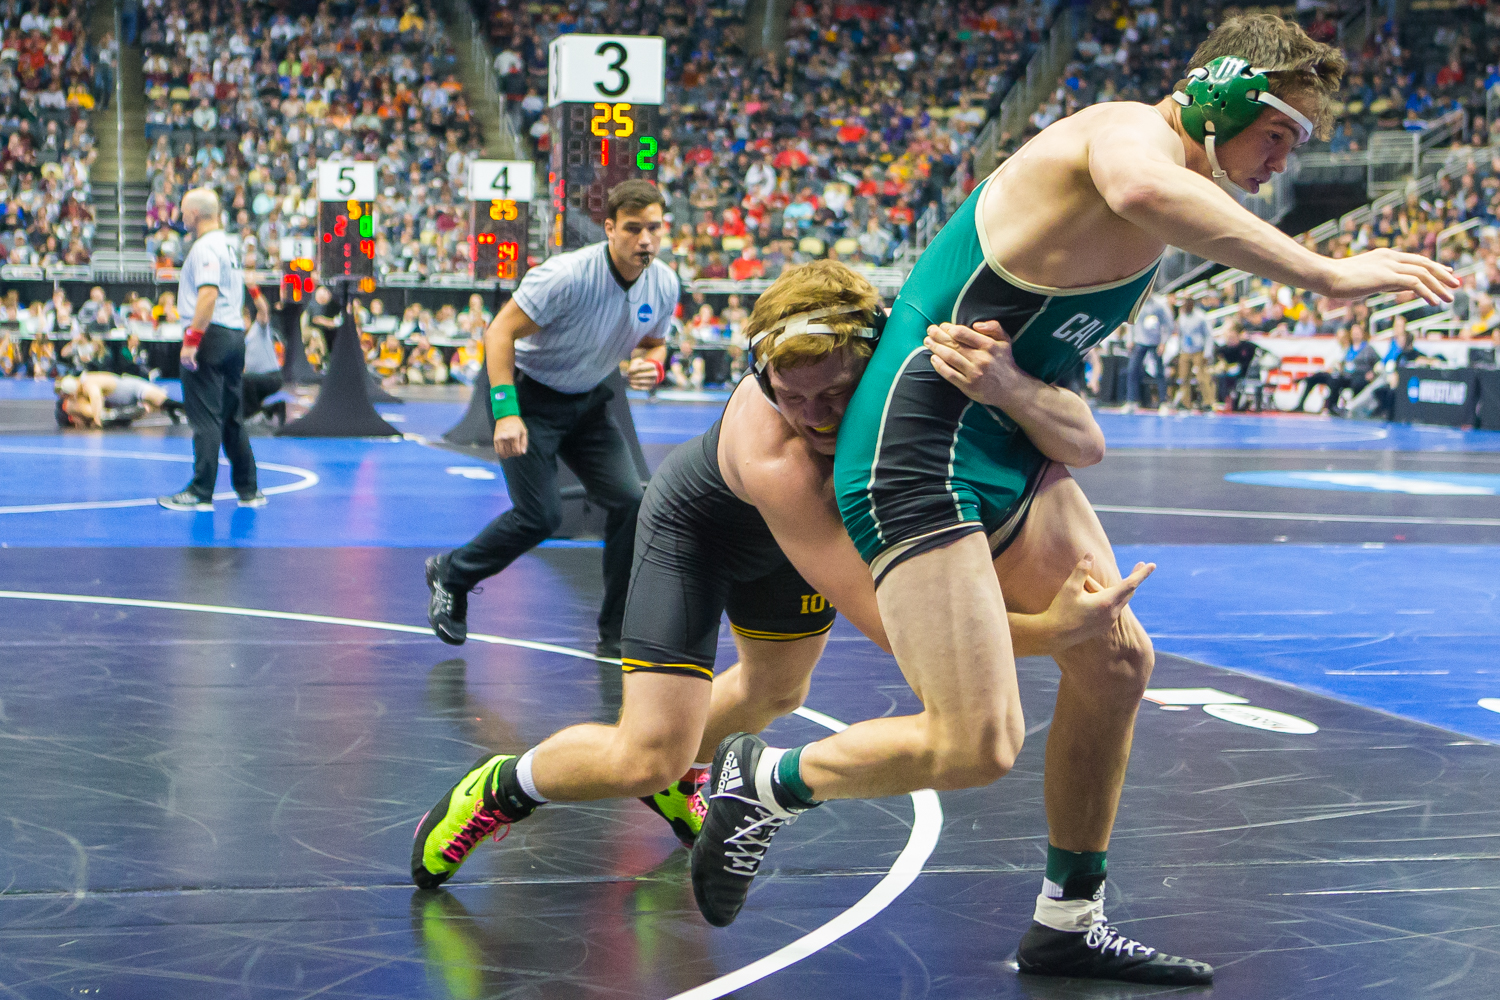 Iowa%E2%80%99s+197-pound+Jacob+Warner+wrestles+Cal+Poly%E2%80%99s+Thomas+Lane+during+the+second+session+of+the+2019+NCAA+D1+Wrestling+Championships+at+PPG+Paints+Arena+in+Pittsburgh%2C+PA+on+Thursday%2C+March+21%2C+2019.+Lane+won+by+sudden+victory%2C+4-2.